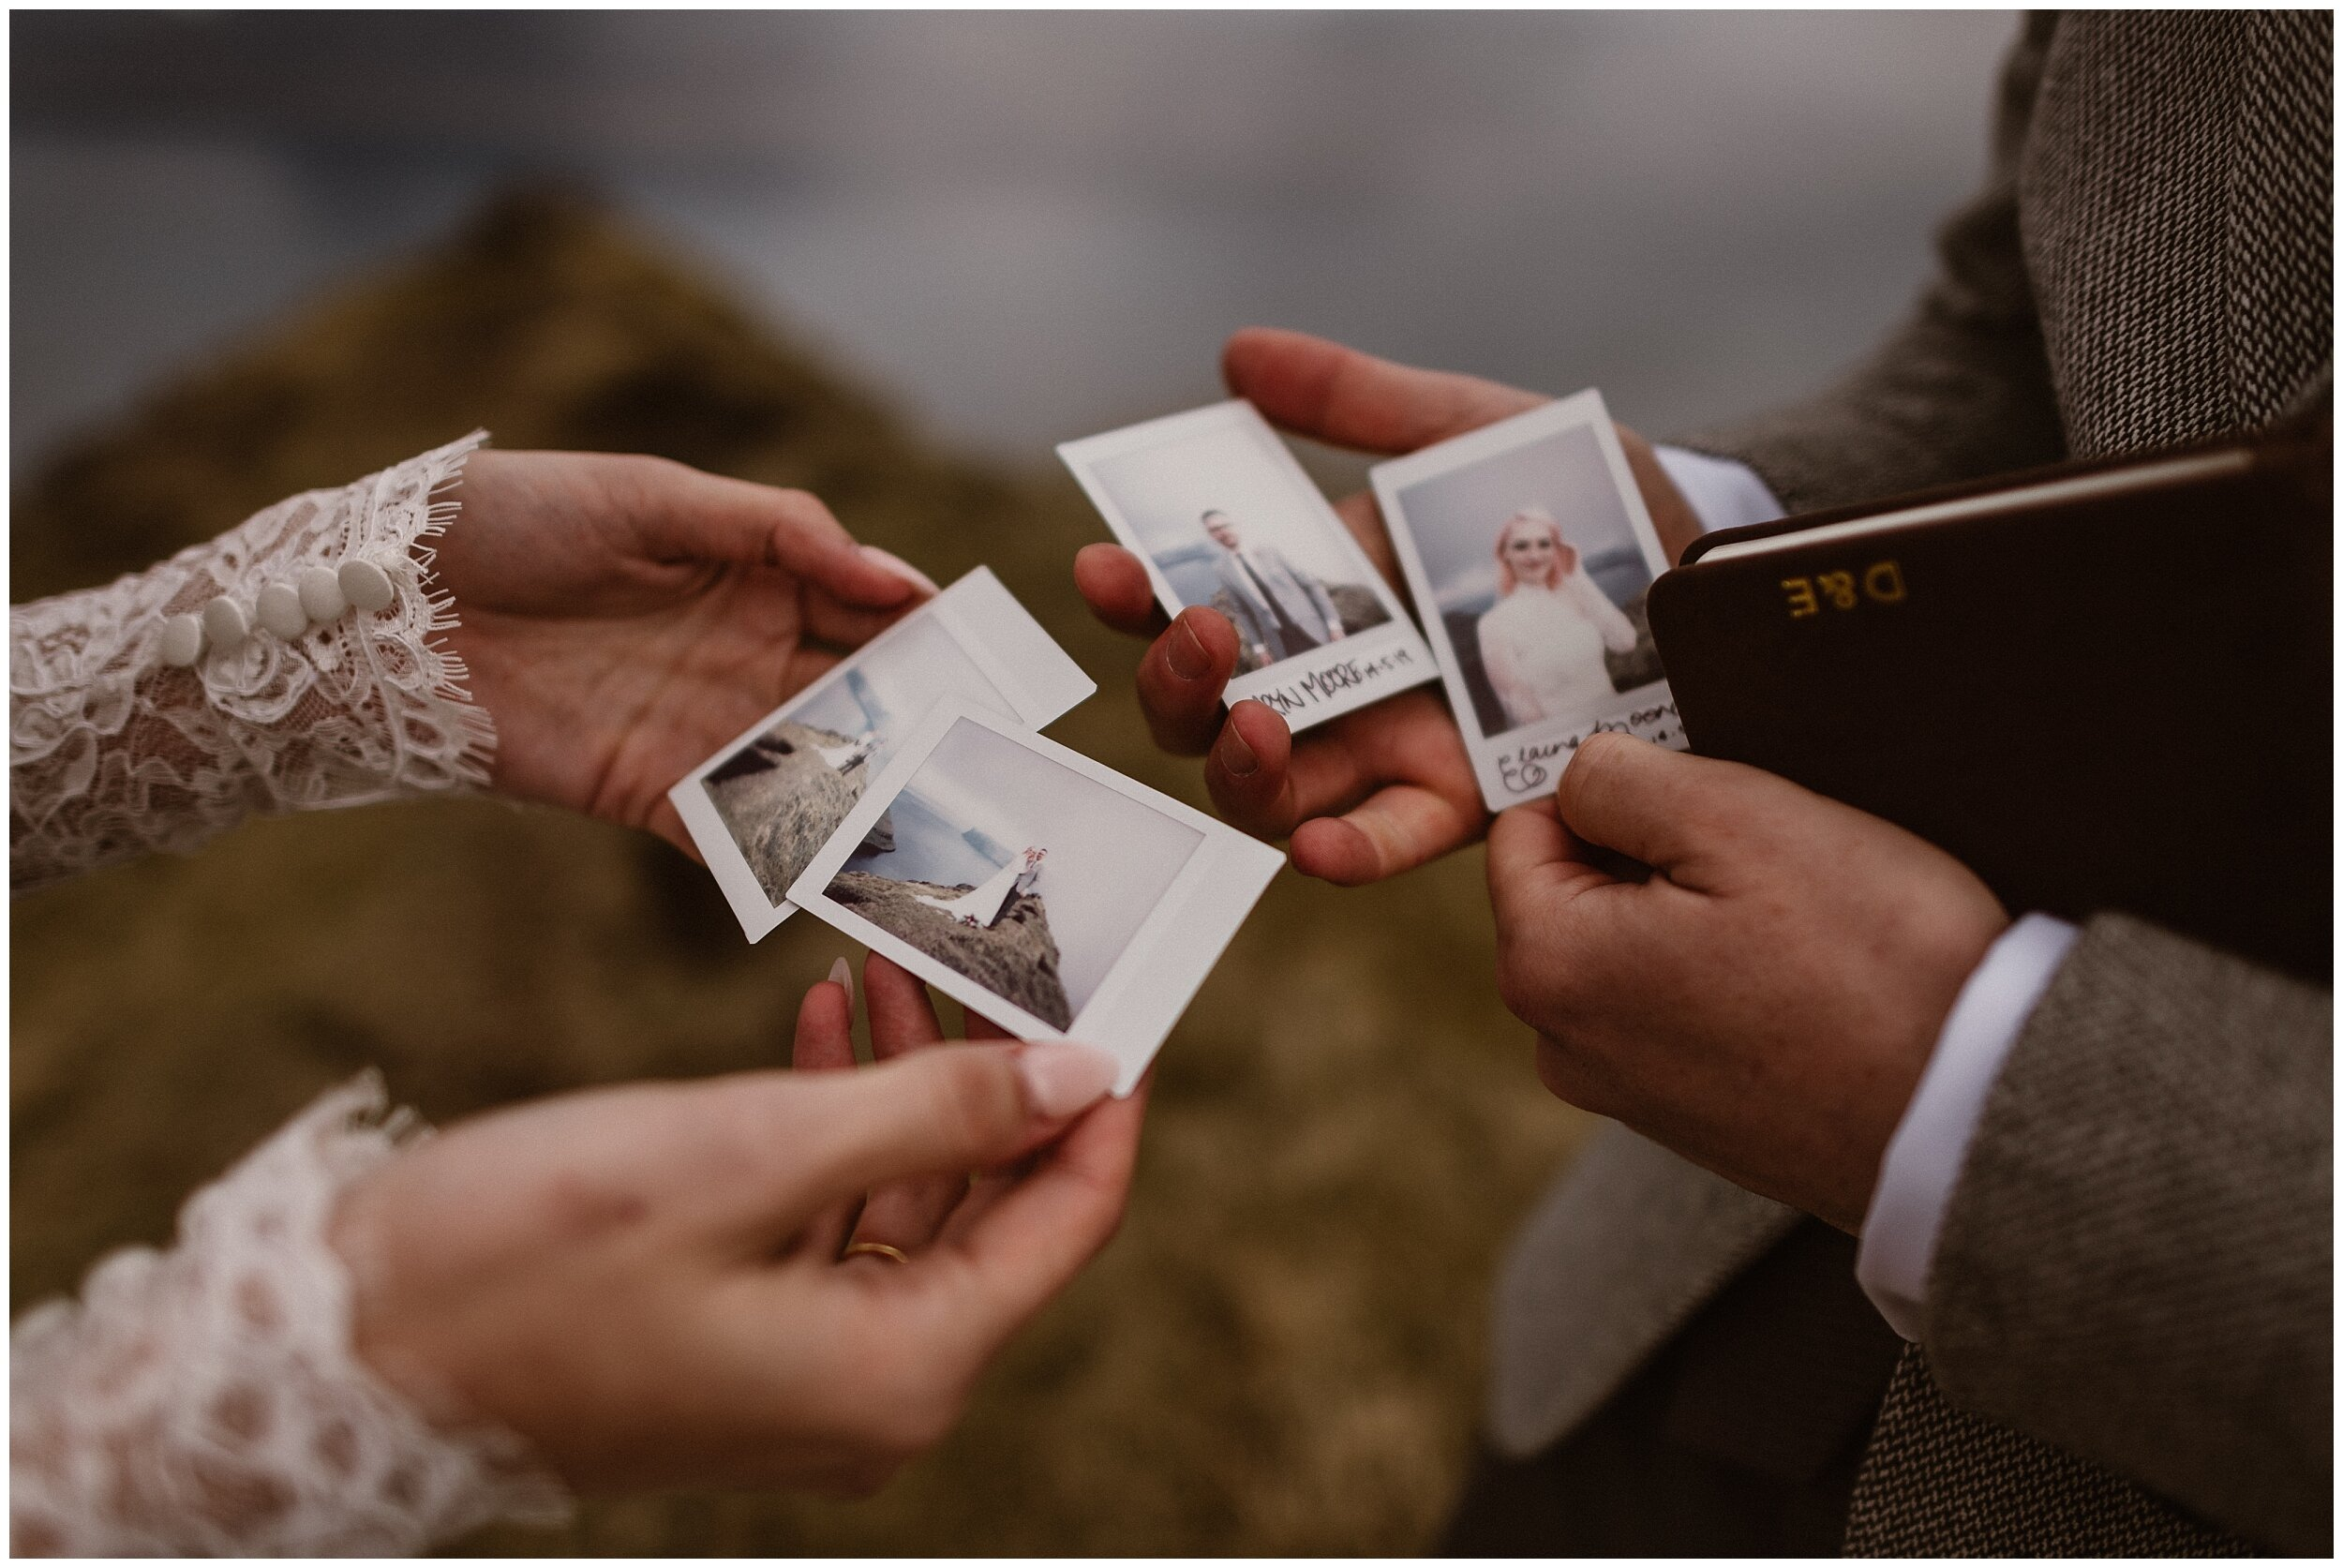 One of the unique details Elaura and Daryn, the bride and groom, wanted to include in their elopement ceremony was to bring their own vintage polaroid camera so they could capture pictures of eachother, sign, and date them. This was one of the eloping ideas was specifically unique to what they wanted for their Faroe Islands destination elopement.